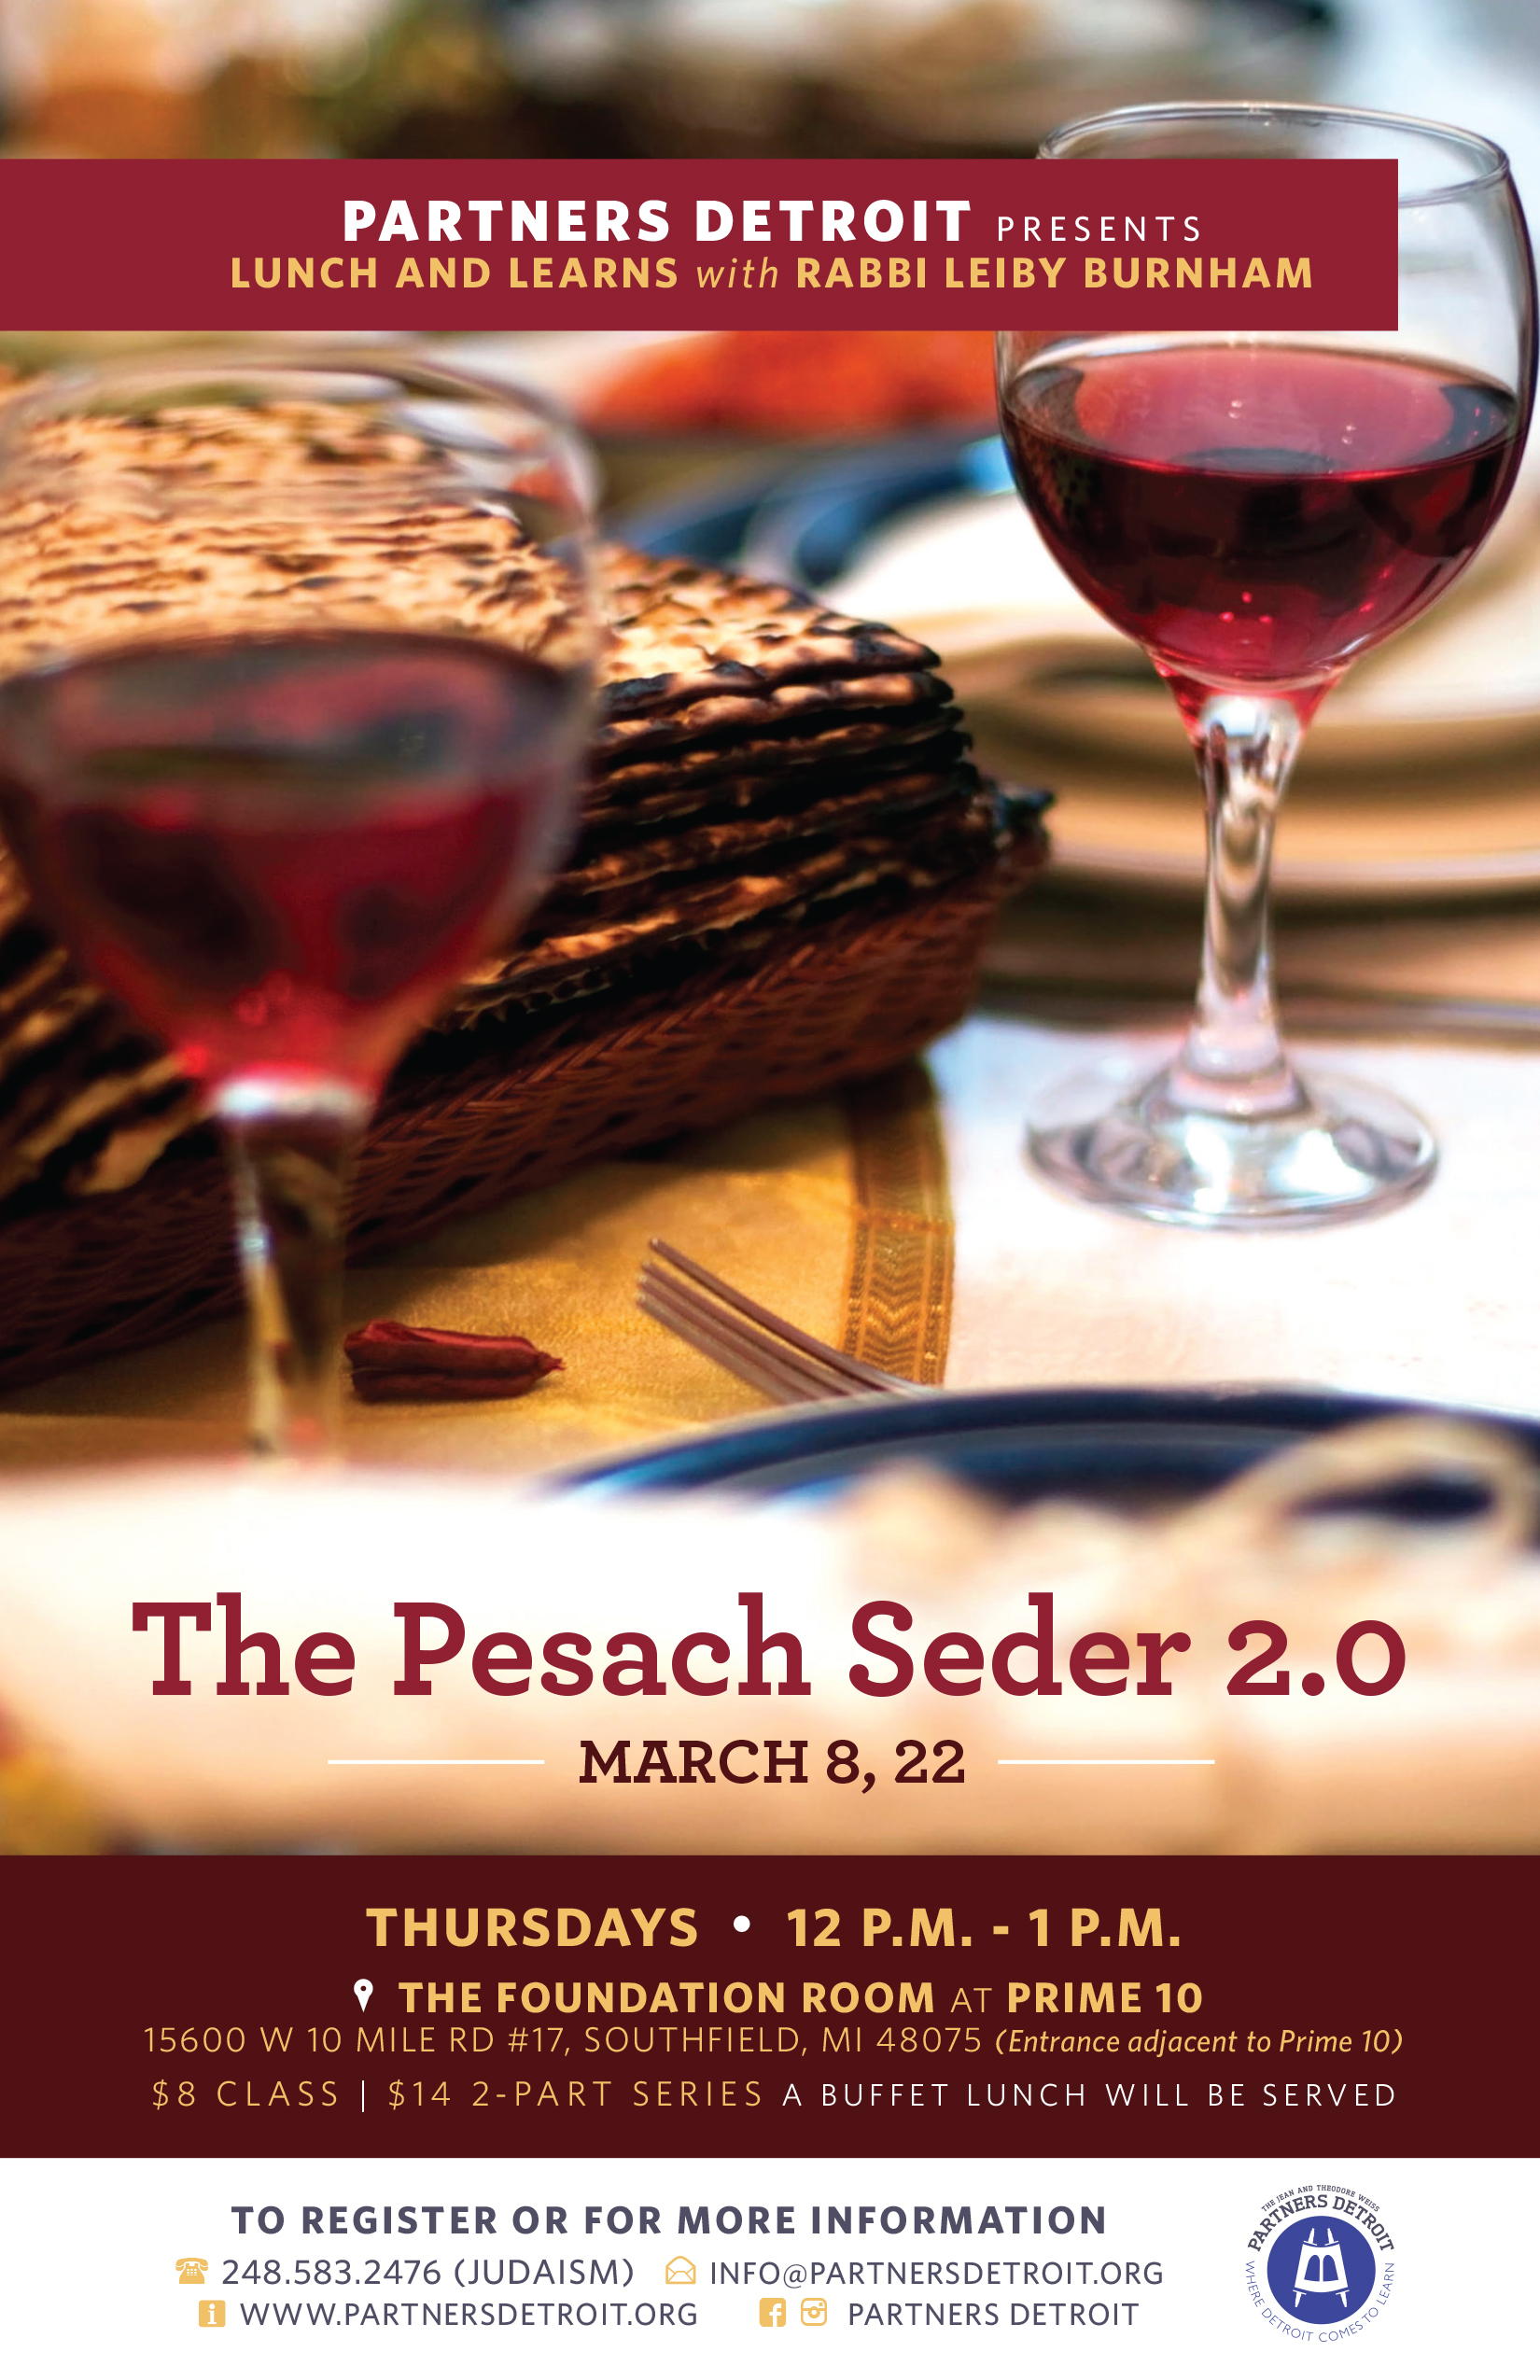 The Pesach Seder 2.0 Lunch 'n Learn